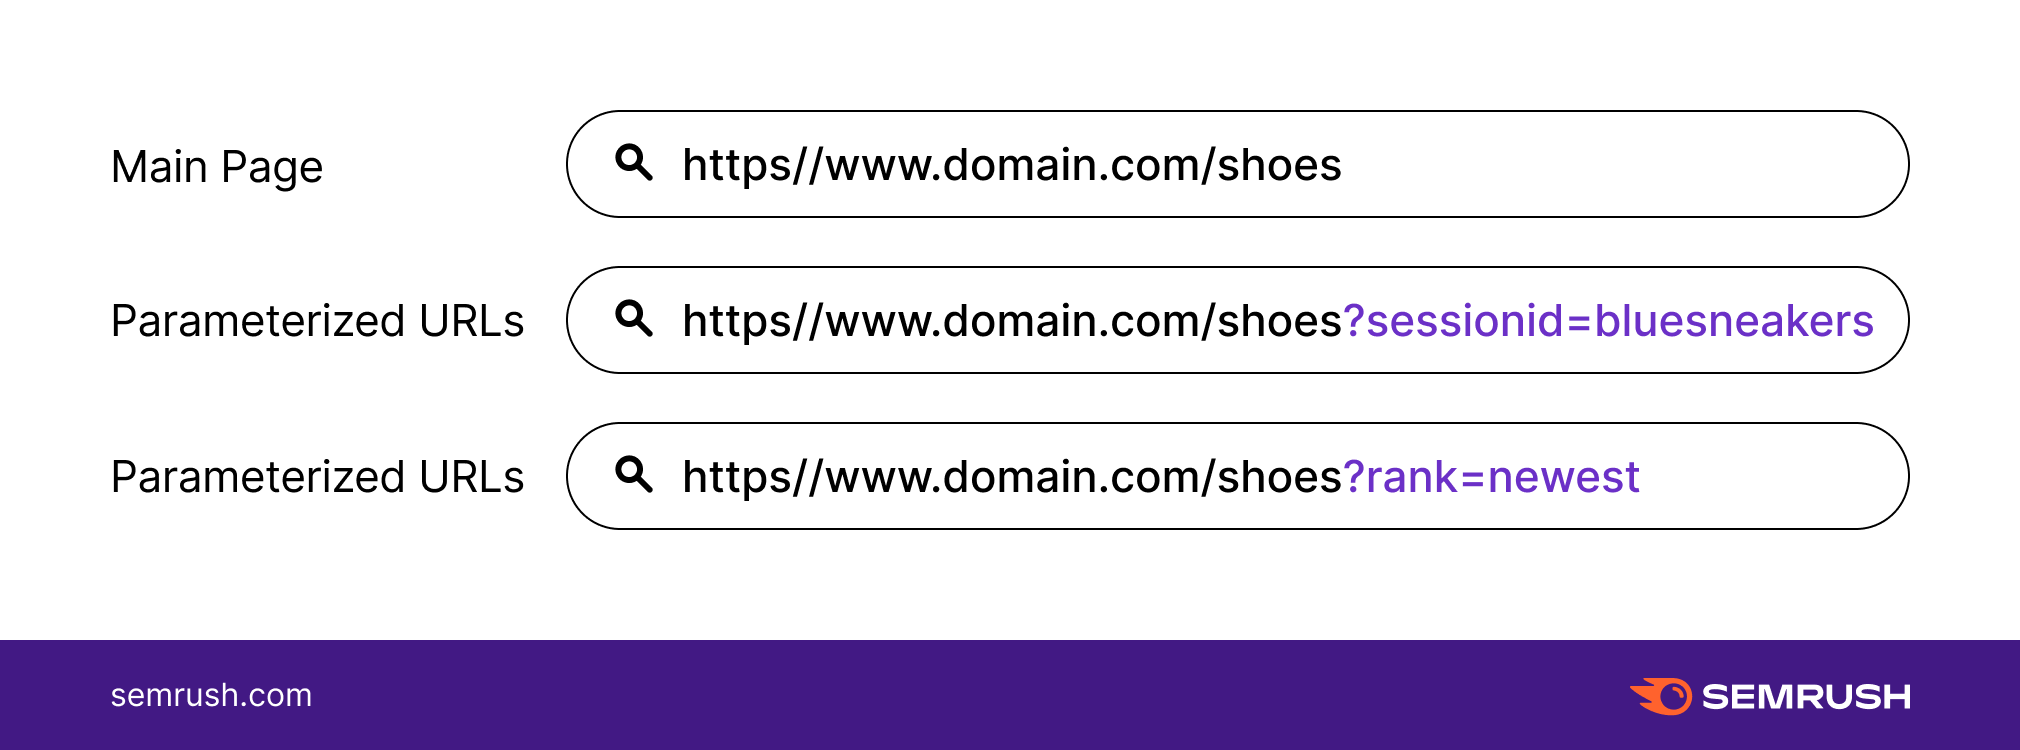 Guide to URL Parameters 3